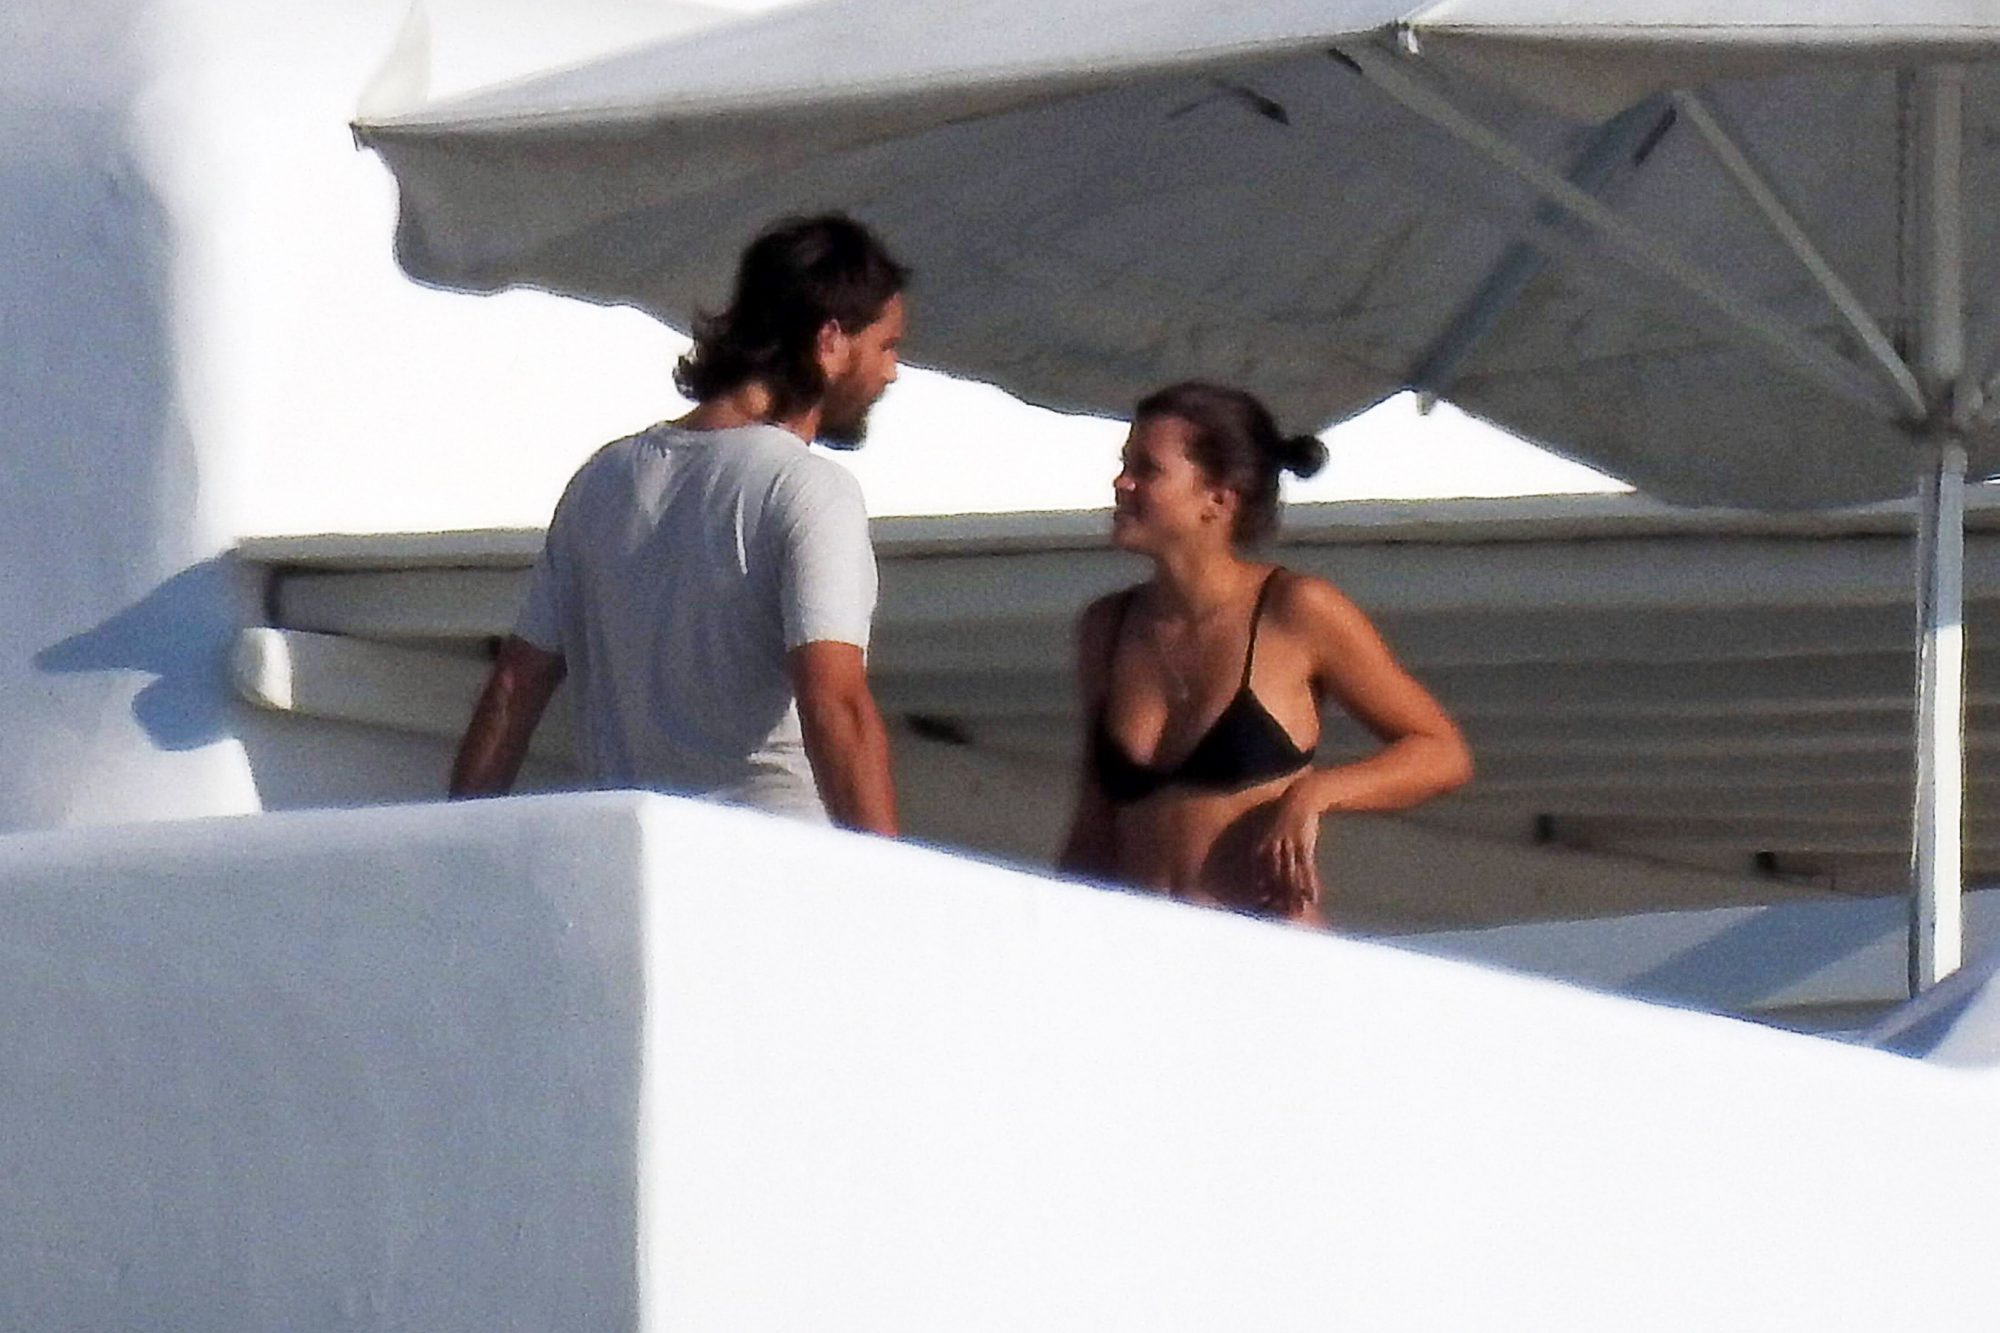 EXCLUSIVE: Scott Disick Gives Sofia Richie A Kiss In Mykonos